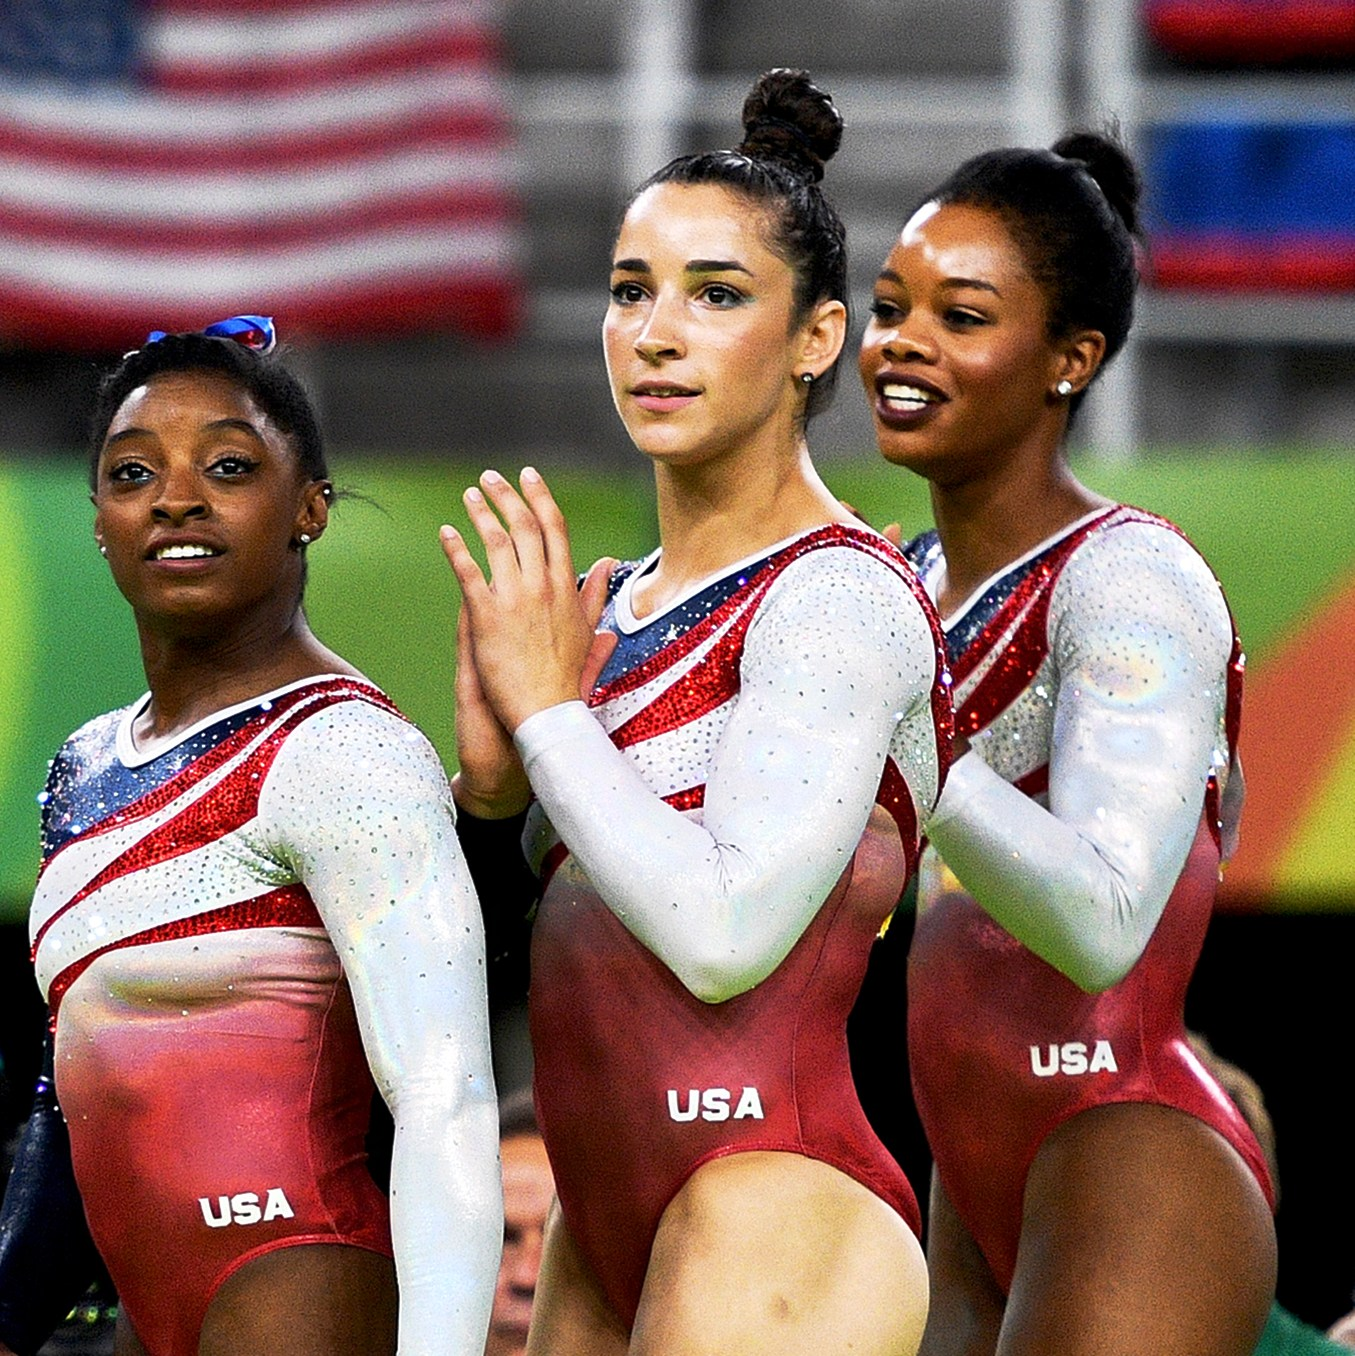 Simone Biles, Aly Raisman and Gabby Douglas of the United States celebrate winning the gold medal during the Artistic Gymnastics Women's Team Final on Day 4 of the Rio 2016 Olympic Games at the Rio Olympic Arena in Rio de Janeiro, Brazil.